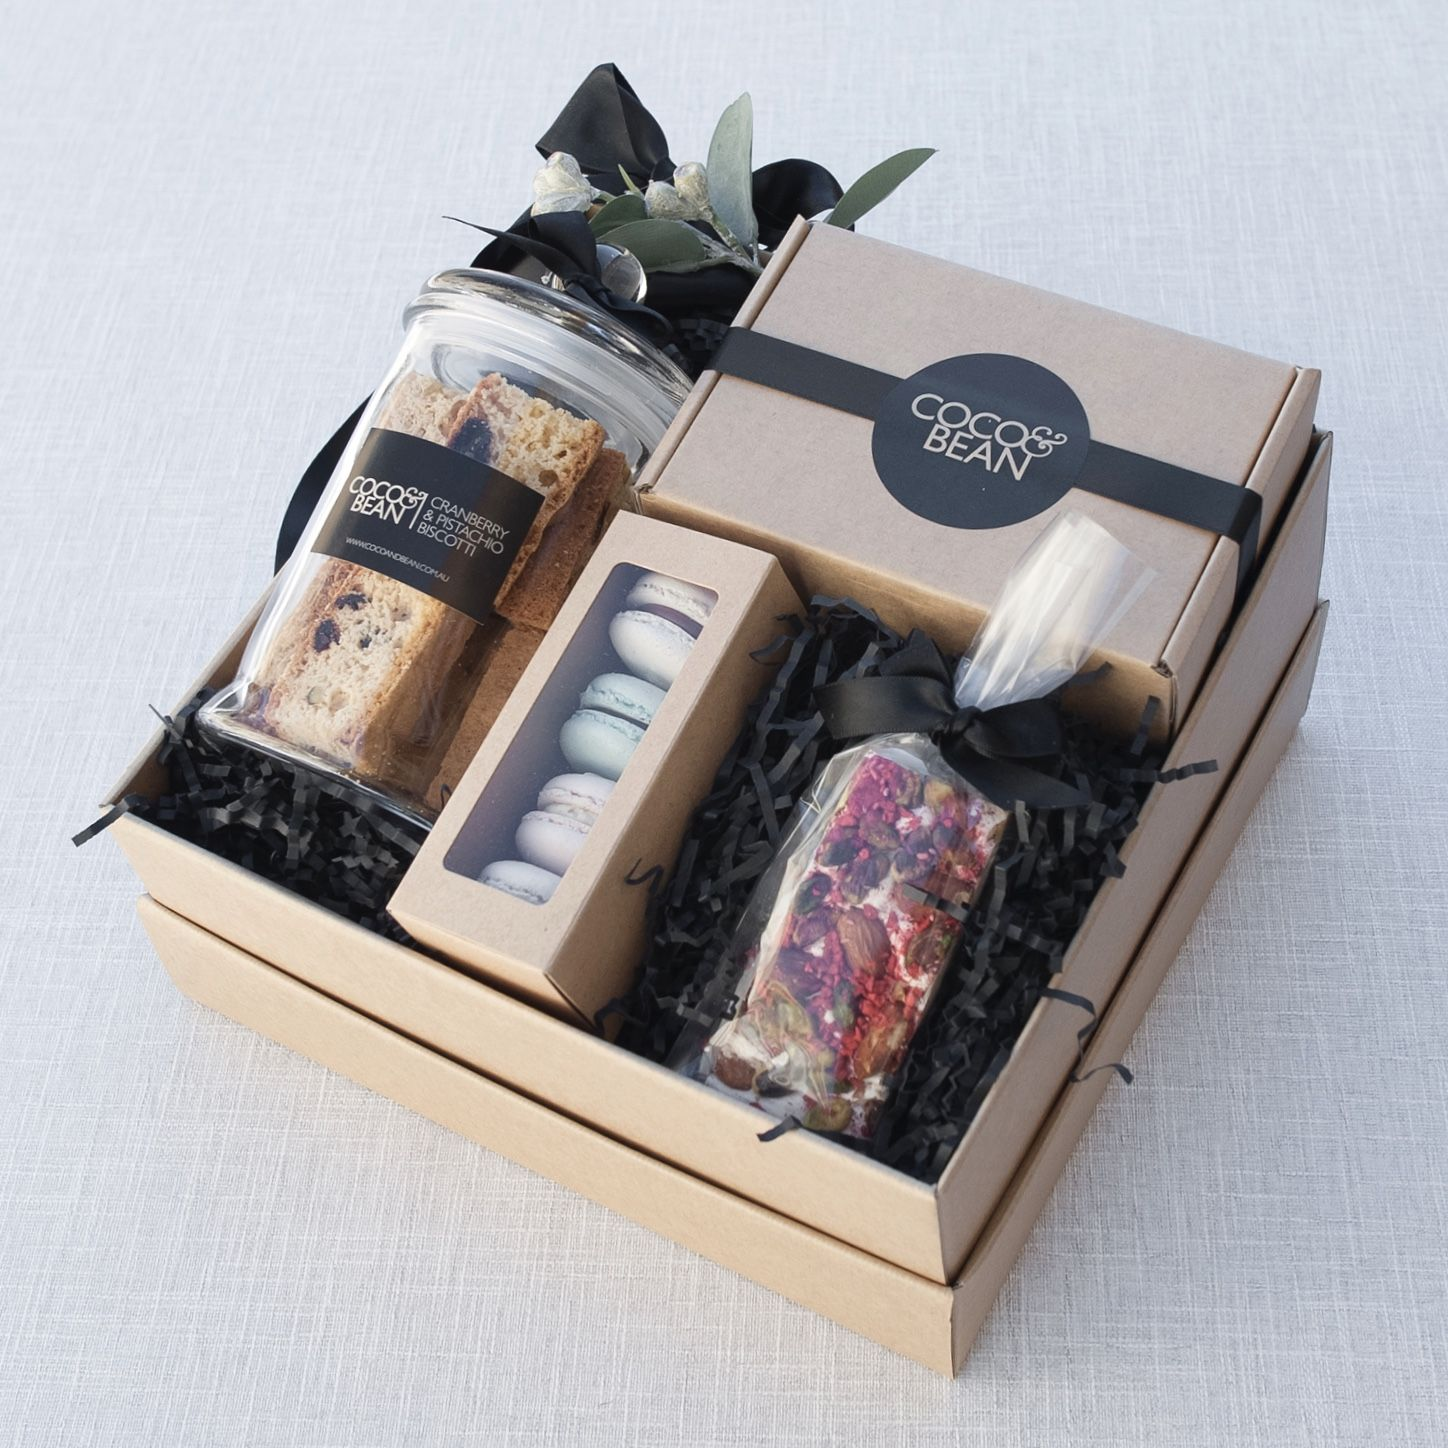 Indulgence Hamper Gourmet Hampers Delivered Fast Corporate Gifts Gift Hampers Business Gifts